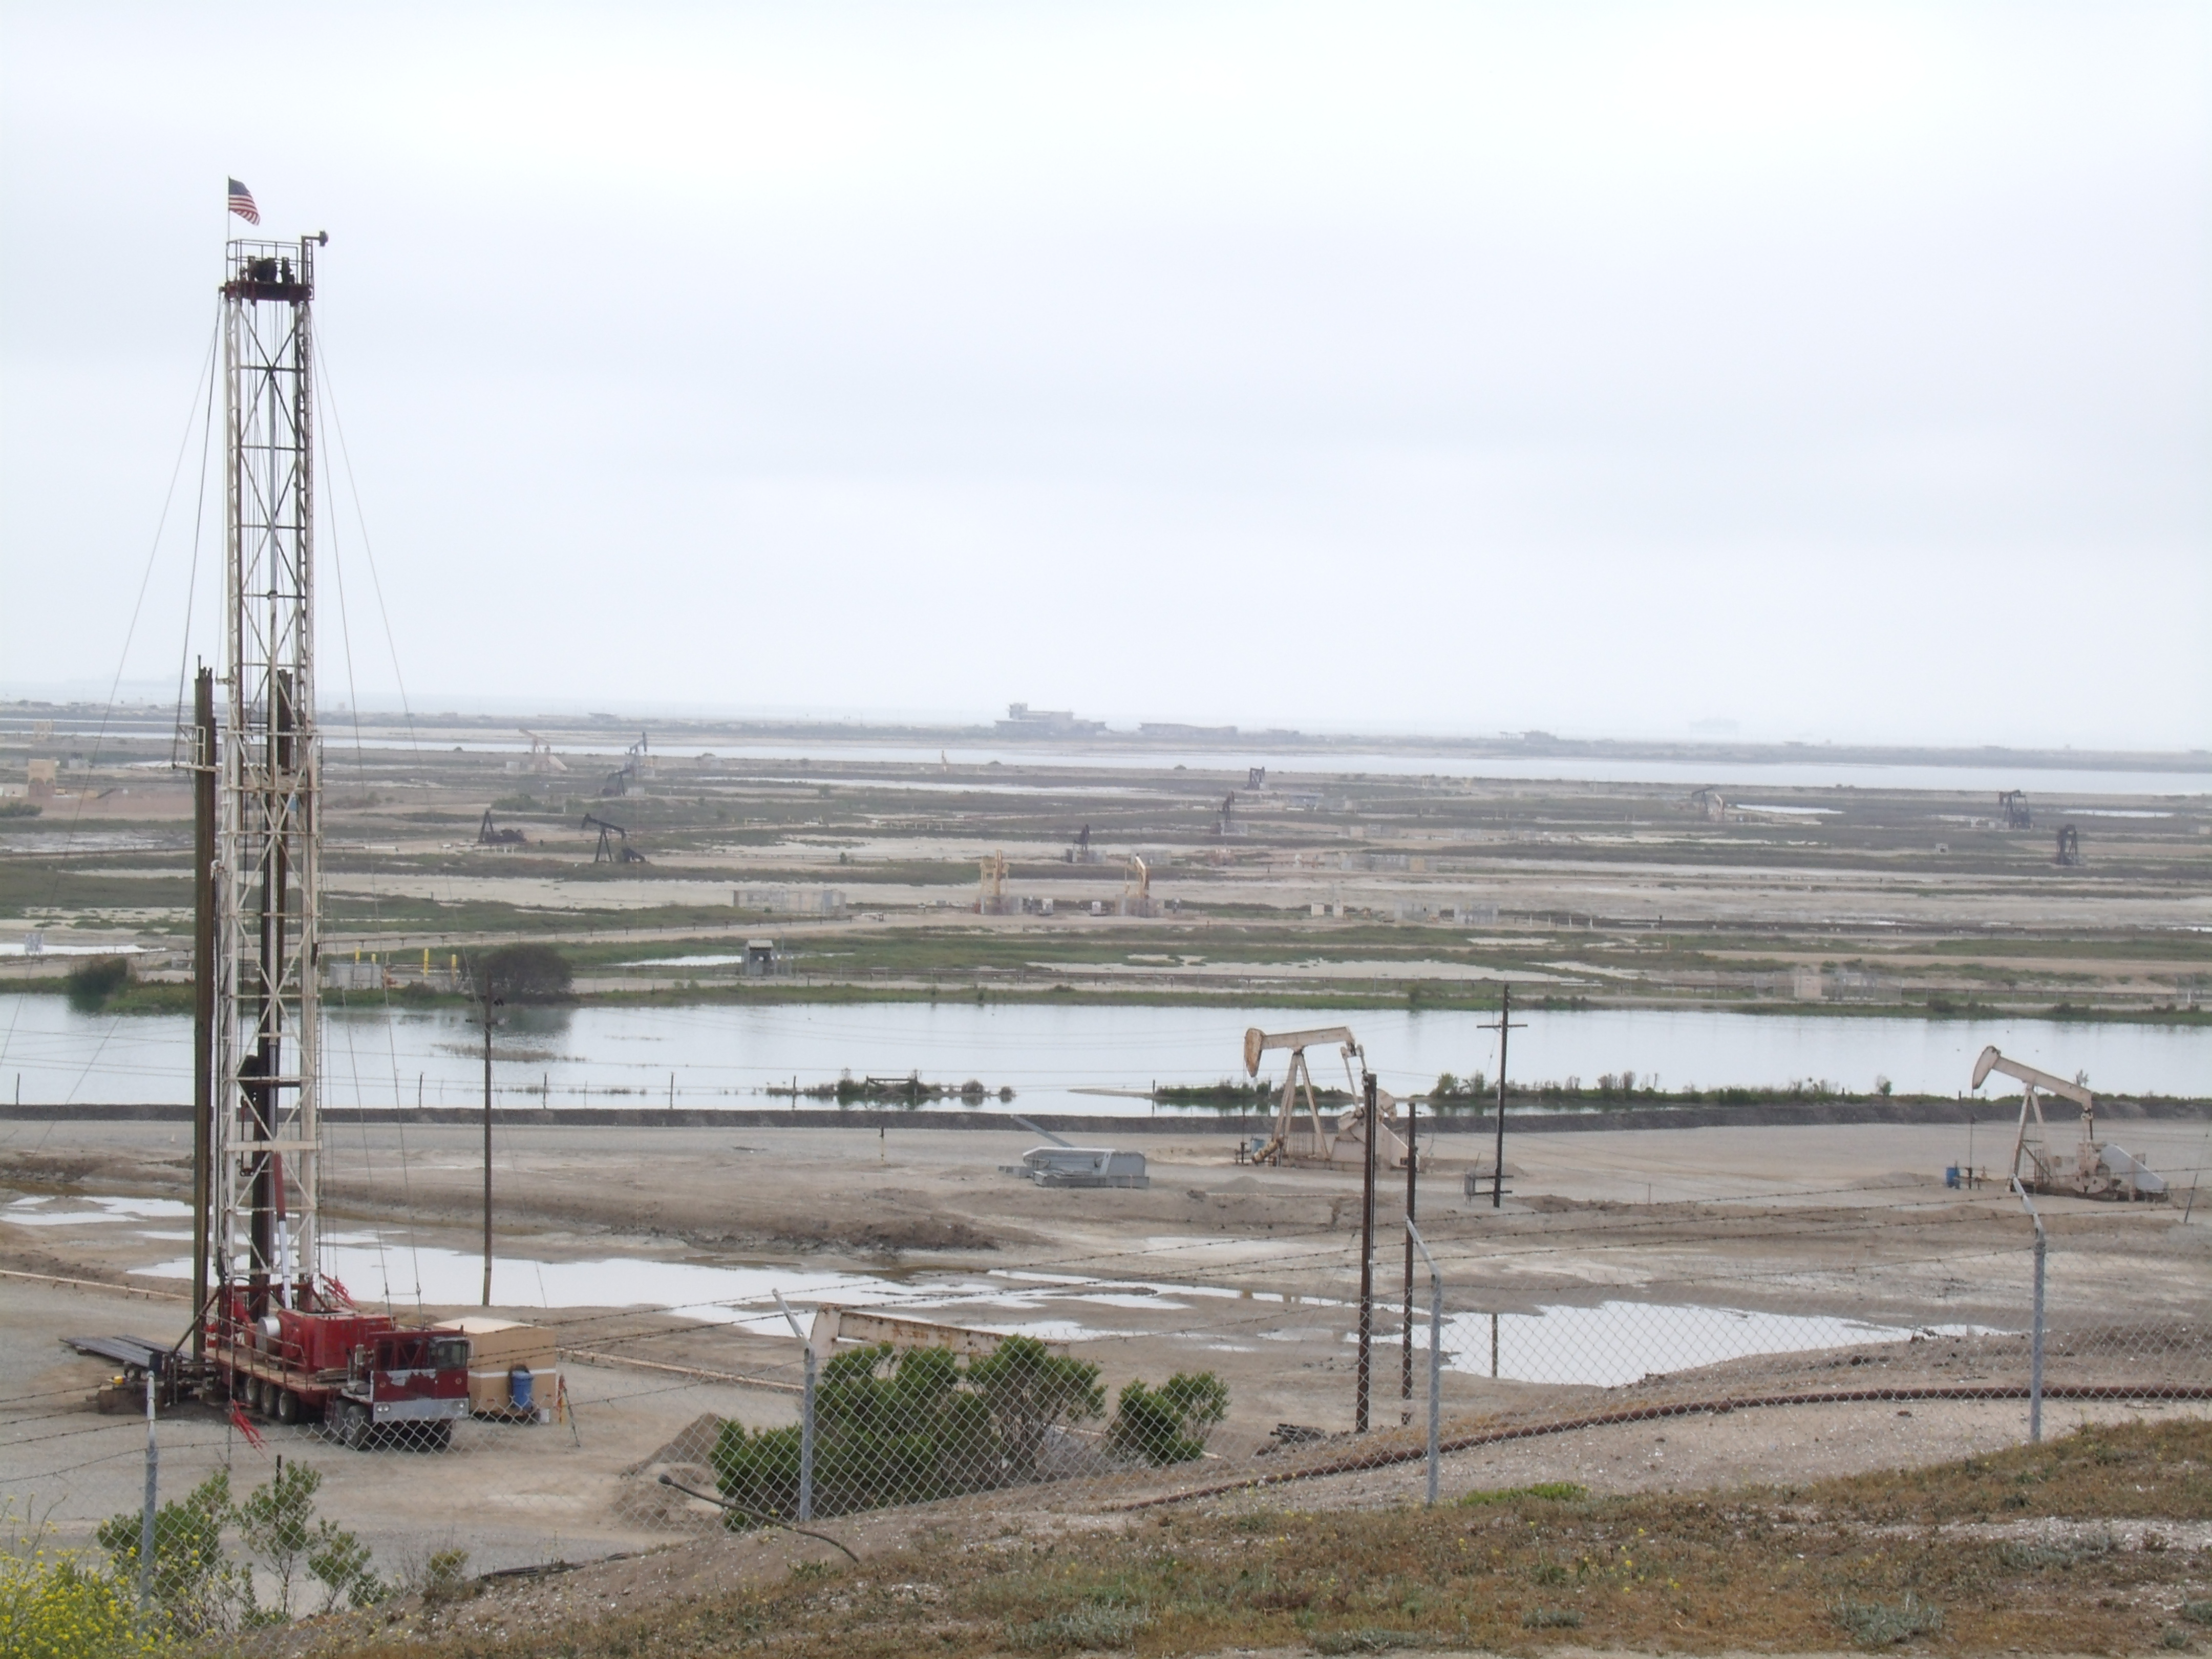 Hb drill and pump photo